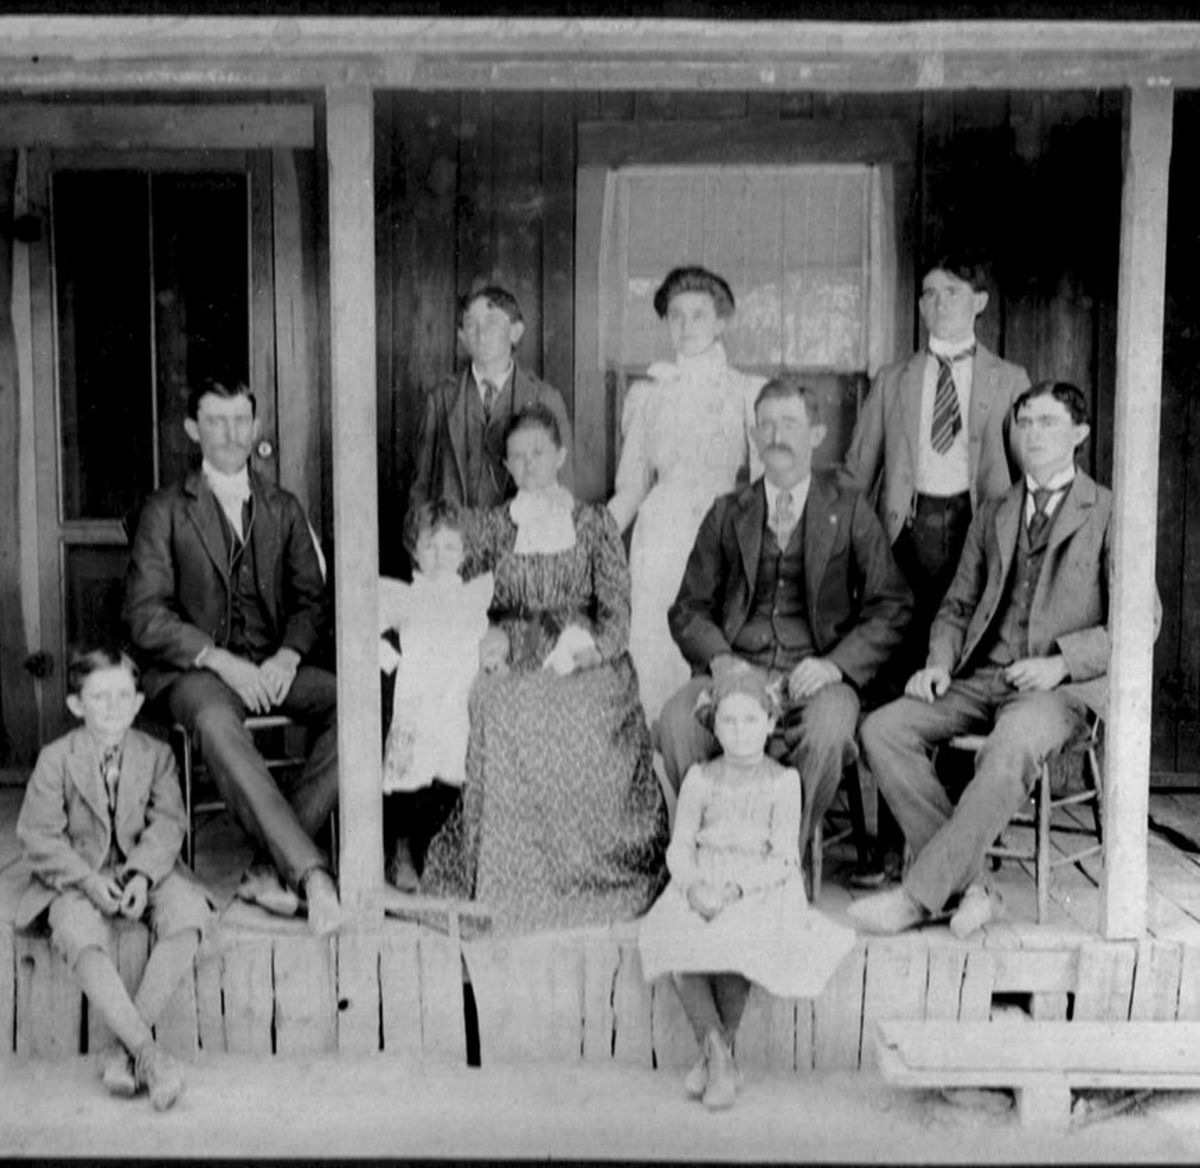 Photo Reference: Benjamin & Francis Bollinger Family, circa 1902. Middle row far left is Joshua Franklin Bollinger who married Amy Georgiana Boyd.